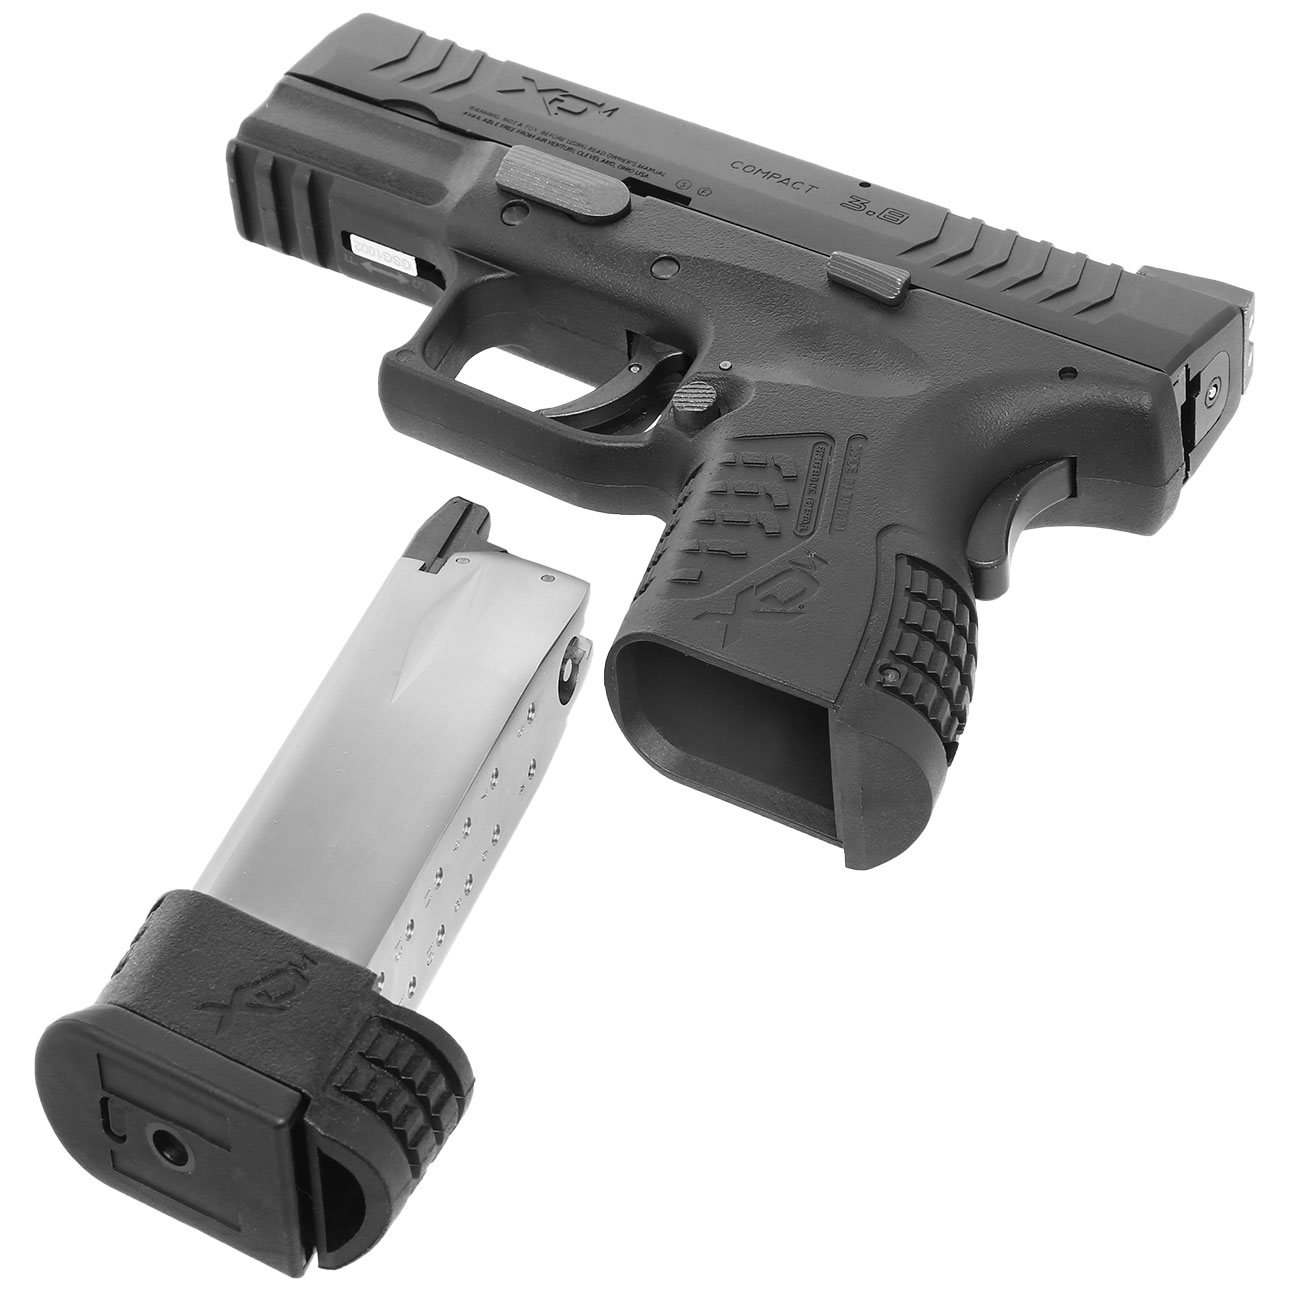 Springfield XDM Compact CO2-Luftpistole 4,5mm BB Blowback 4